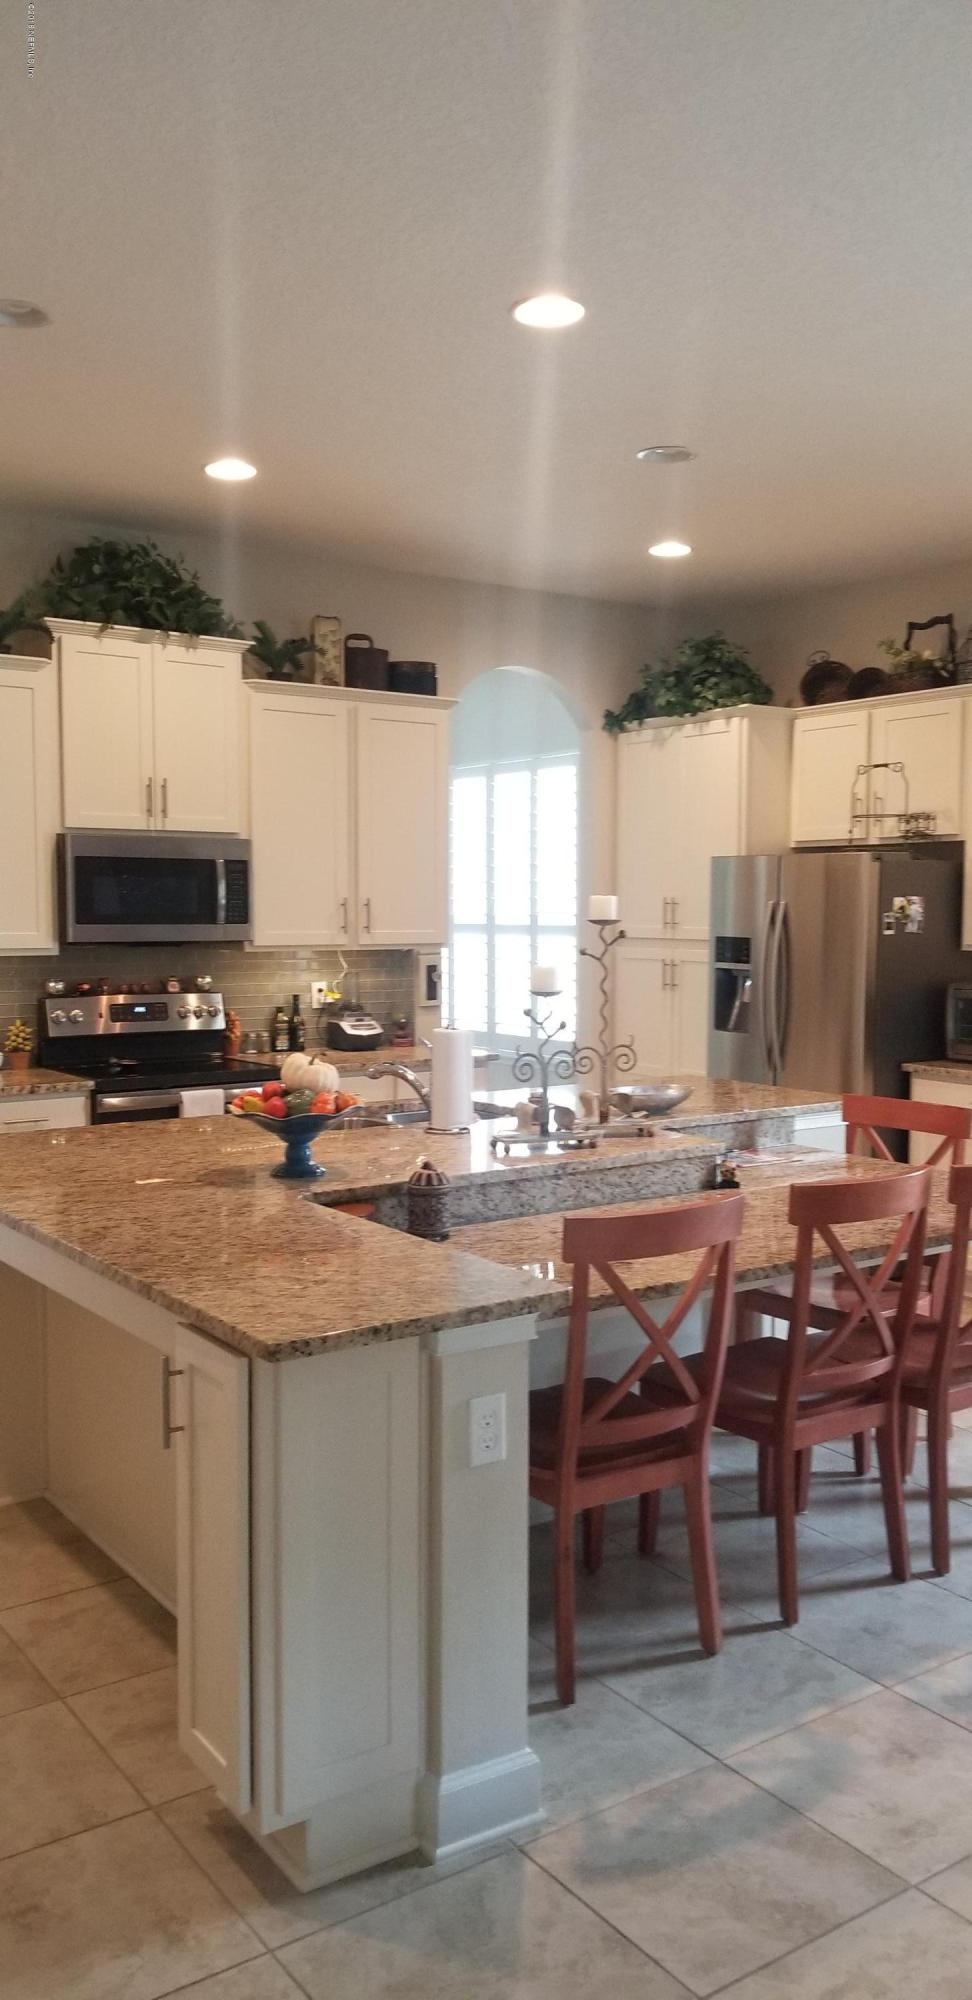 277 JENNIE LAKE CT ST AUGUSTINE - 8